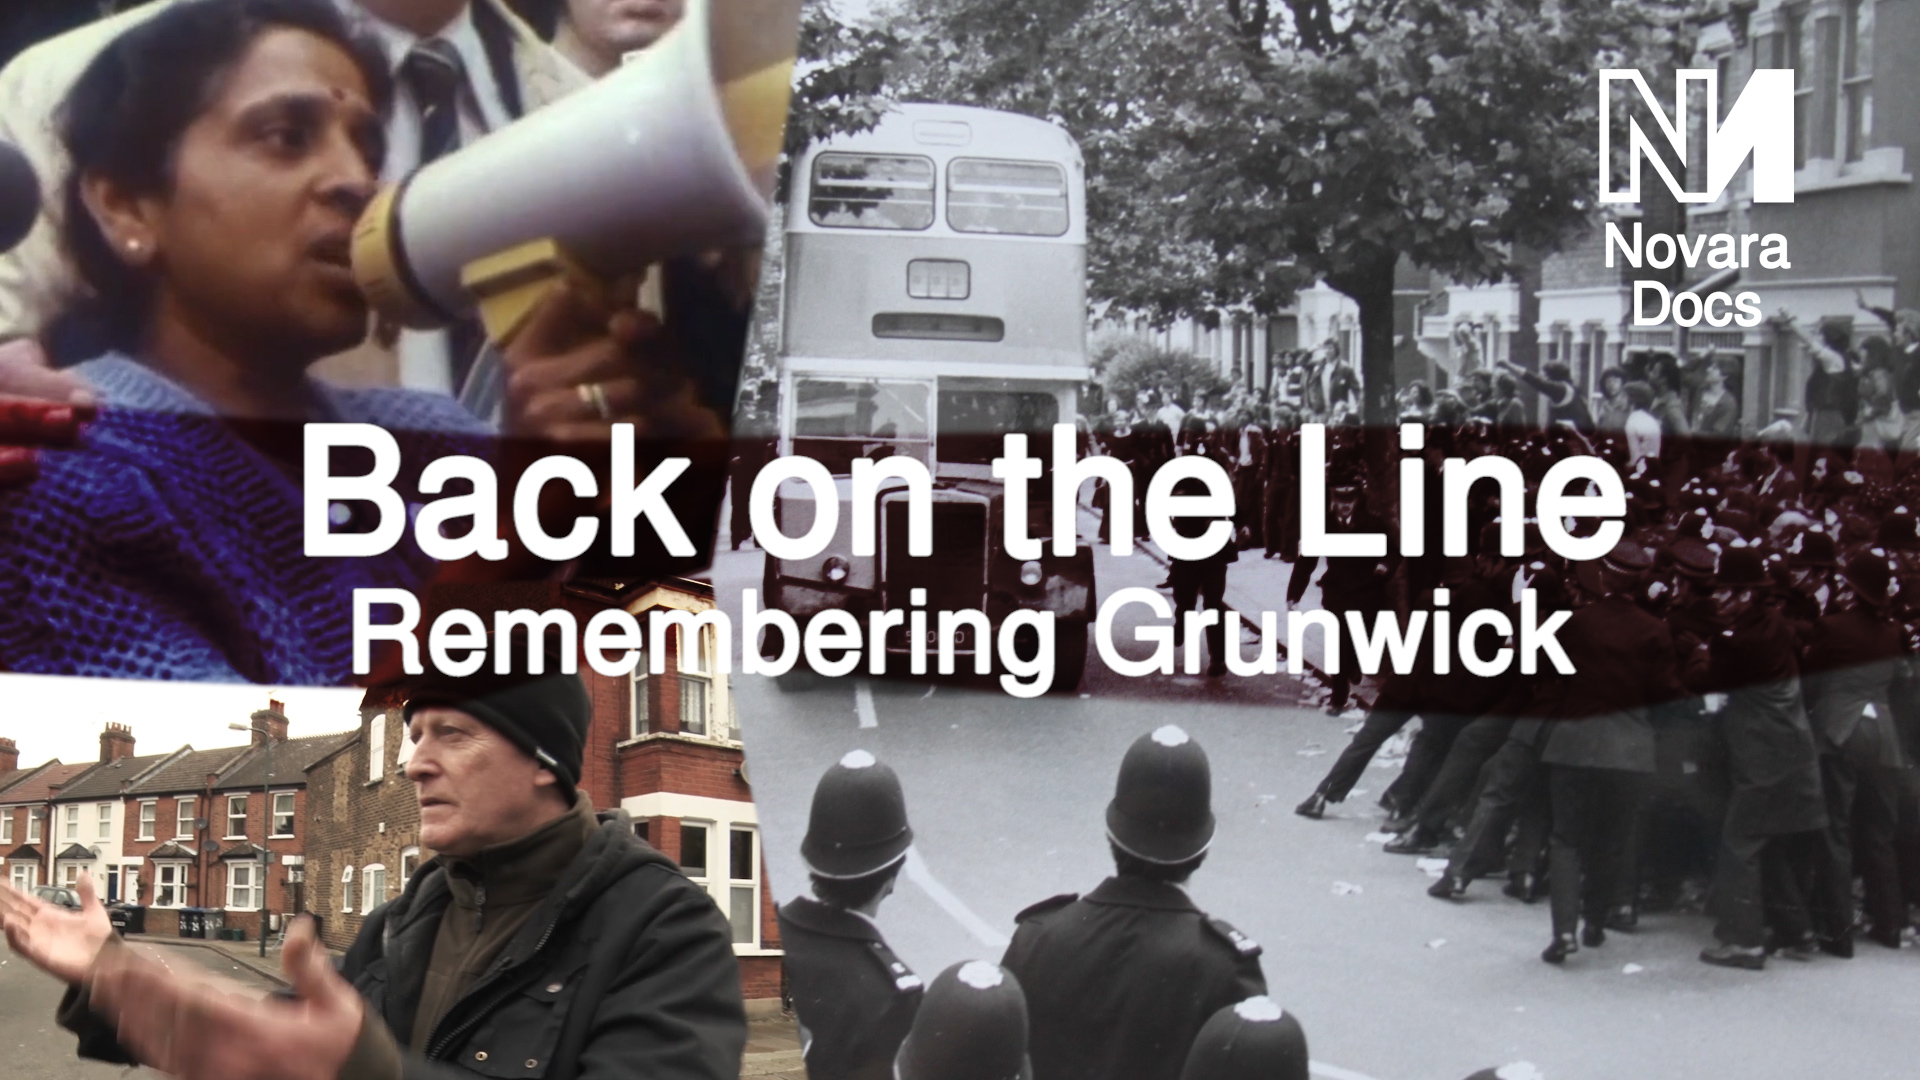 Grunwick with GFX and outro.mp4.00_00_42_17.Still001.00_00_01_20.Still002